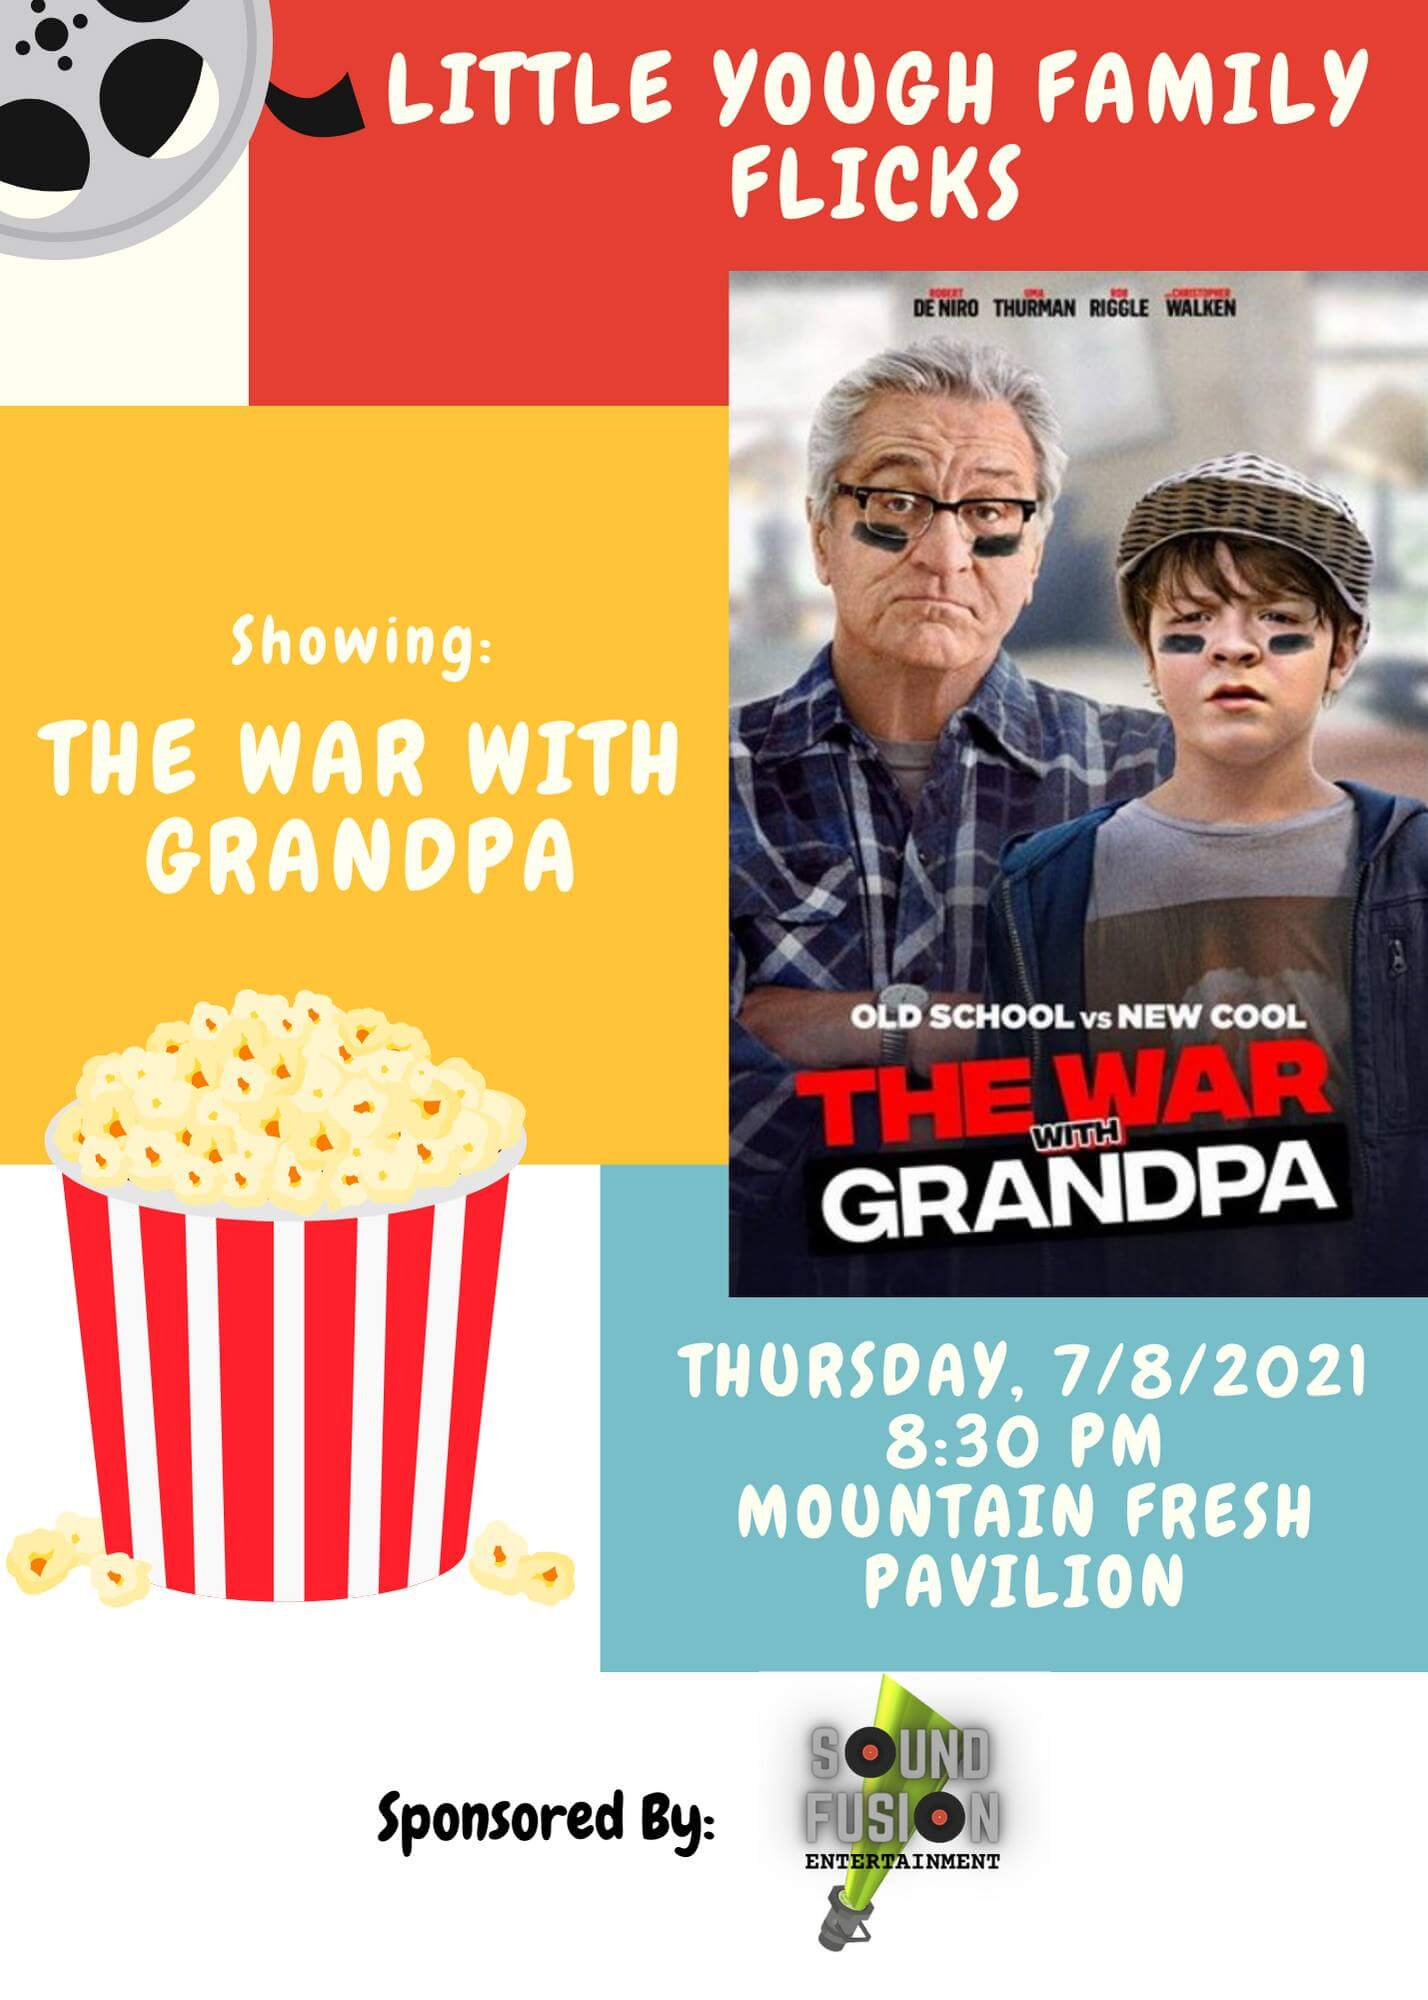 Little Yough Family Flicks - The War With Grandpa